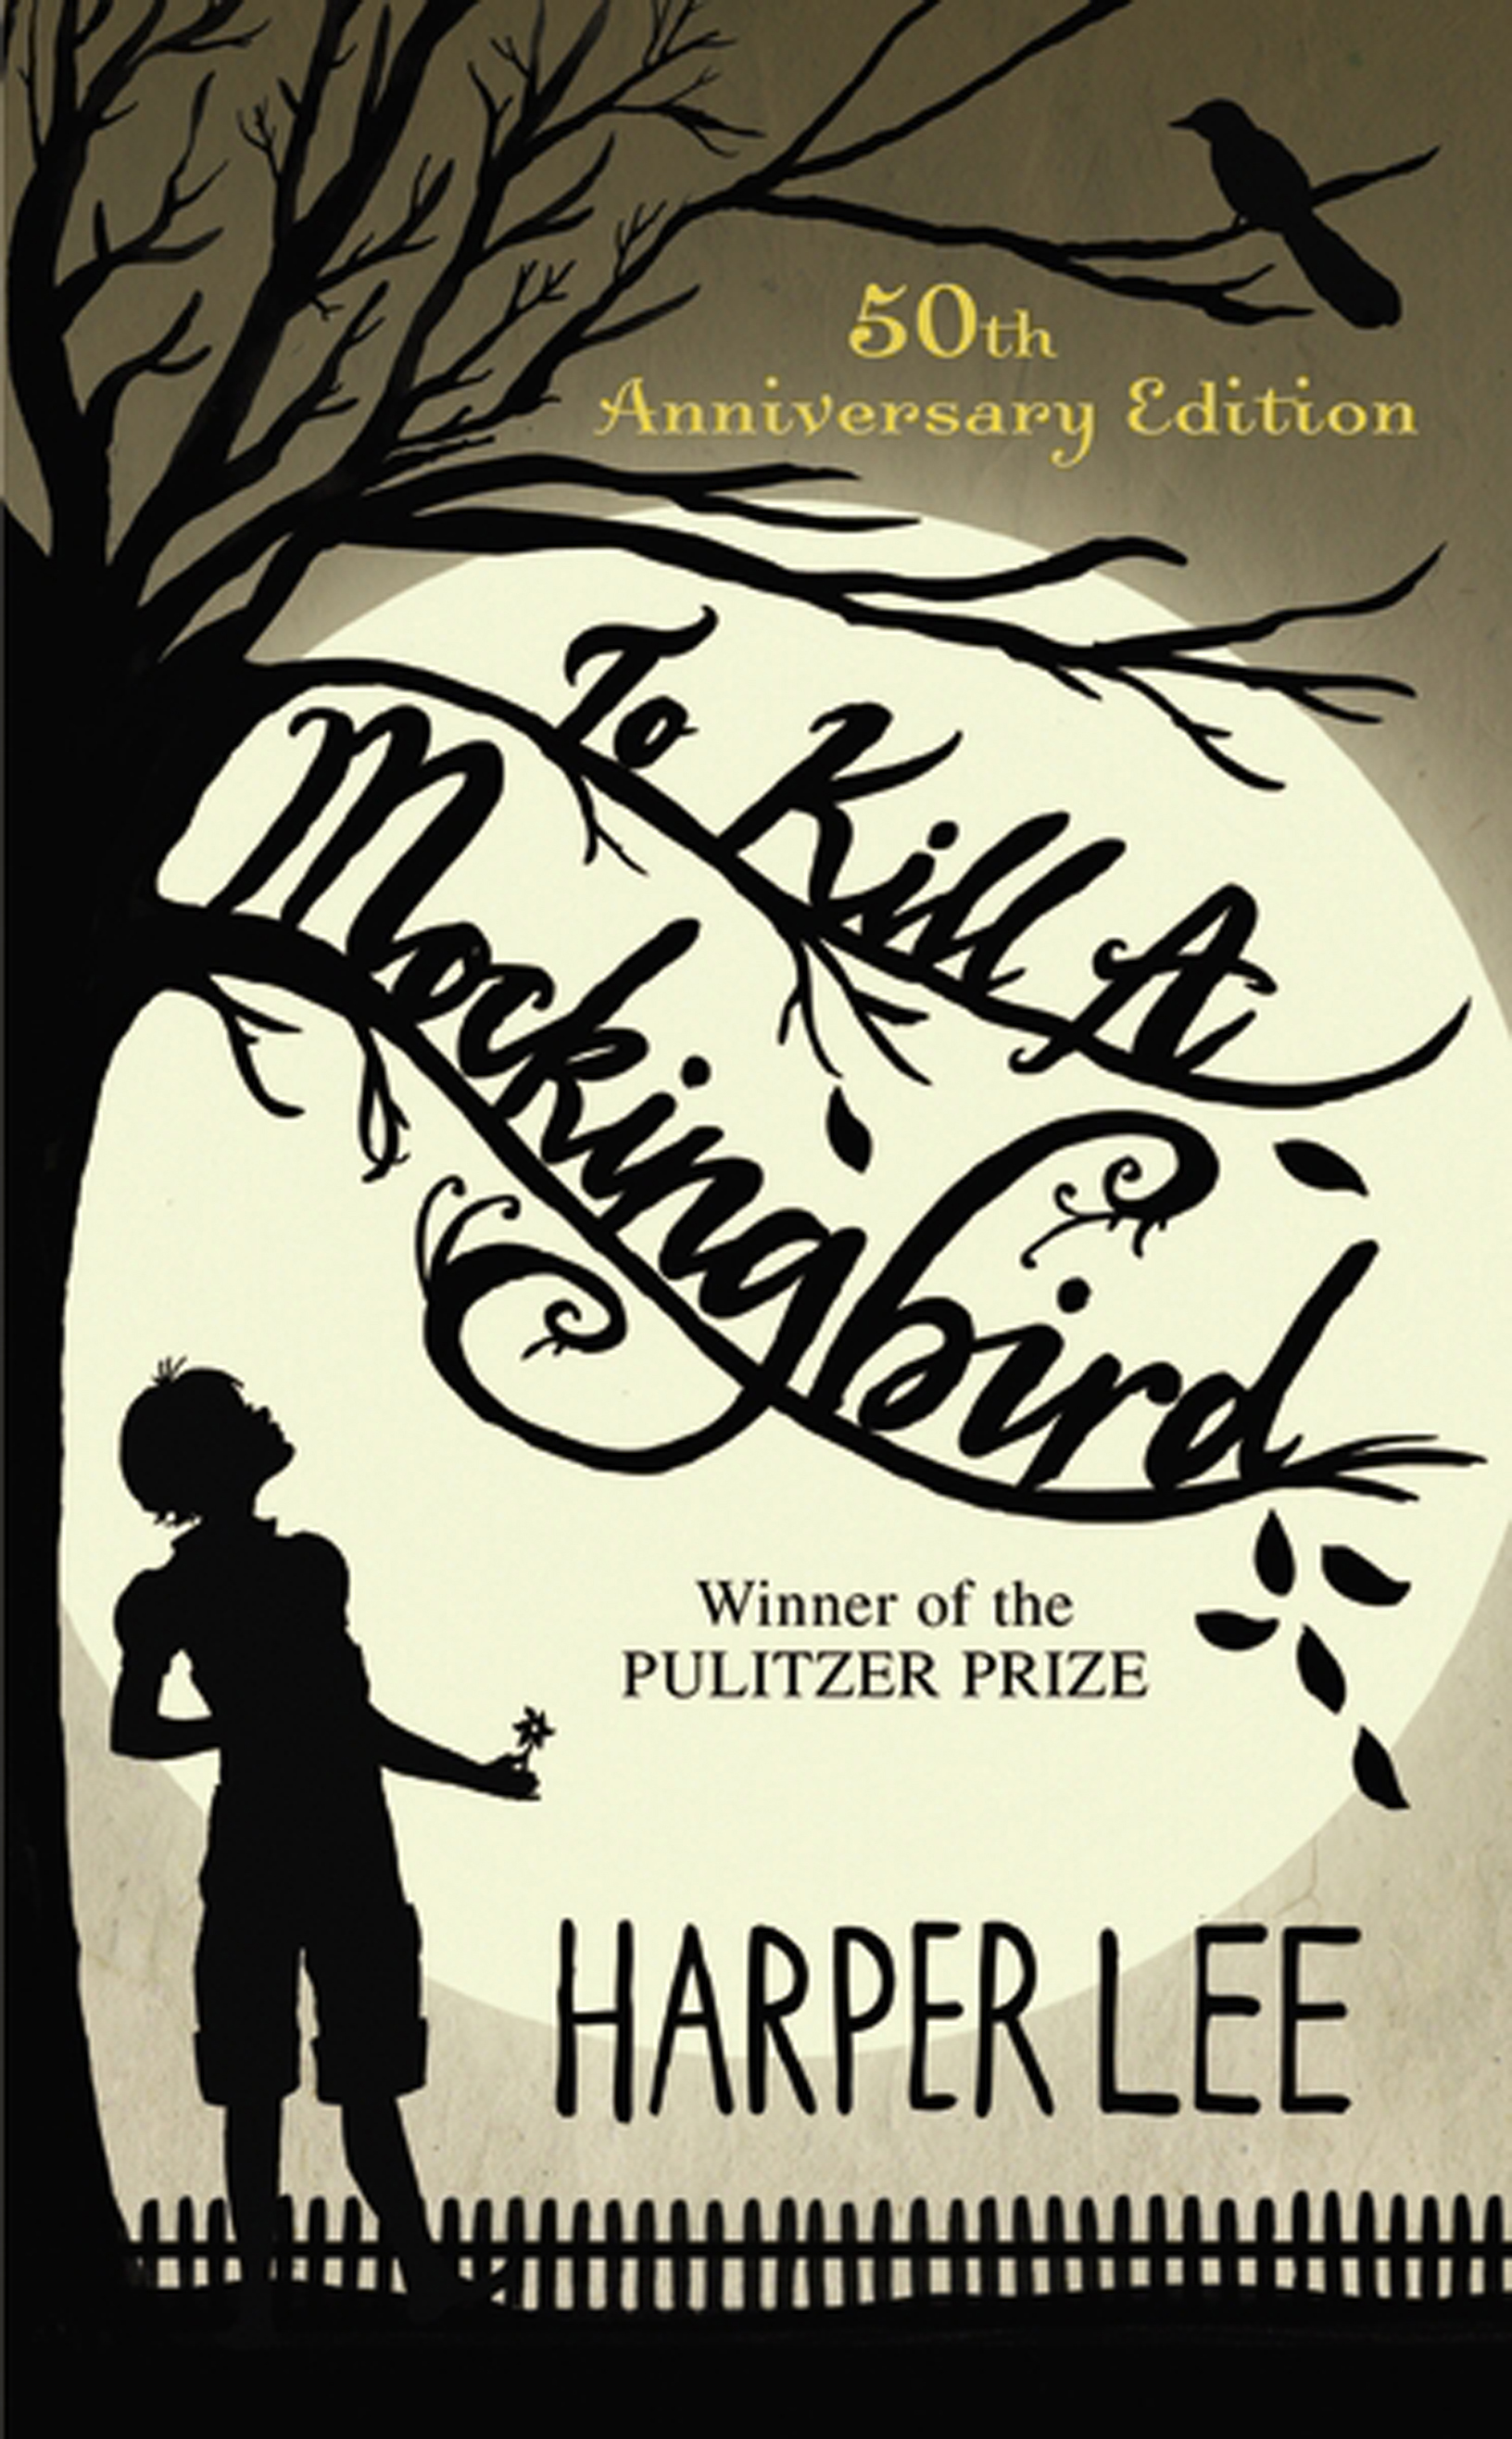 Jim crow kill mockingbird harper lee